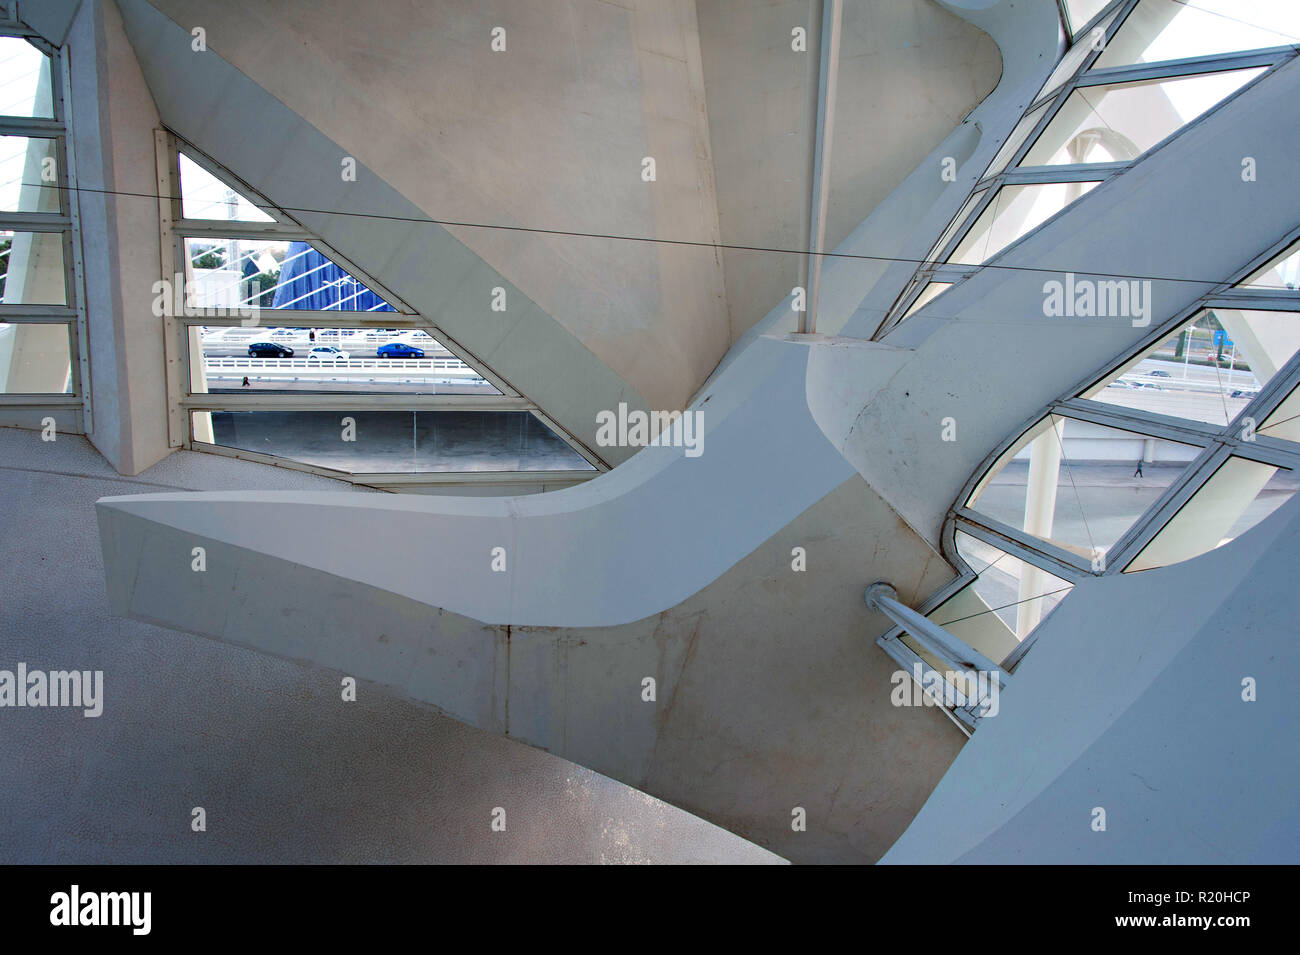 Geometric structural design interior of The Science Museum at the Arts of the Sciences, Valencia, Spain. - Stock Image